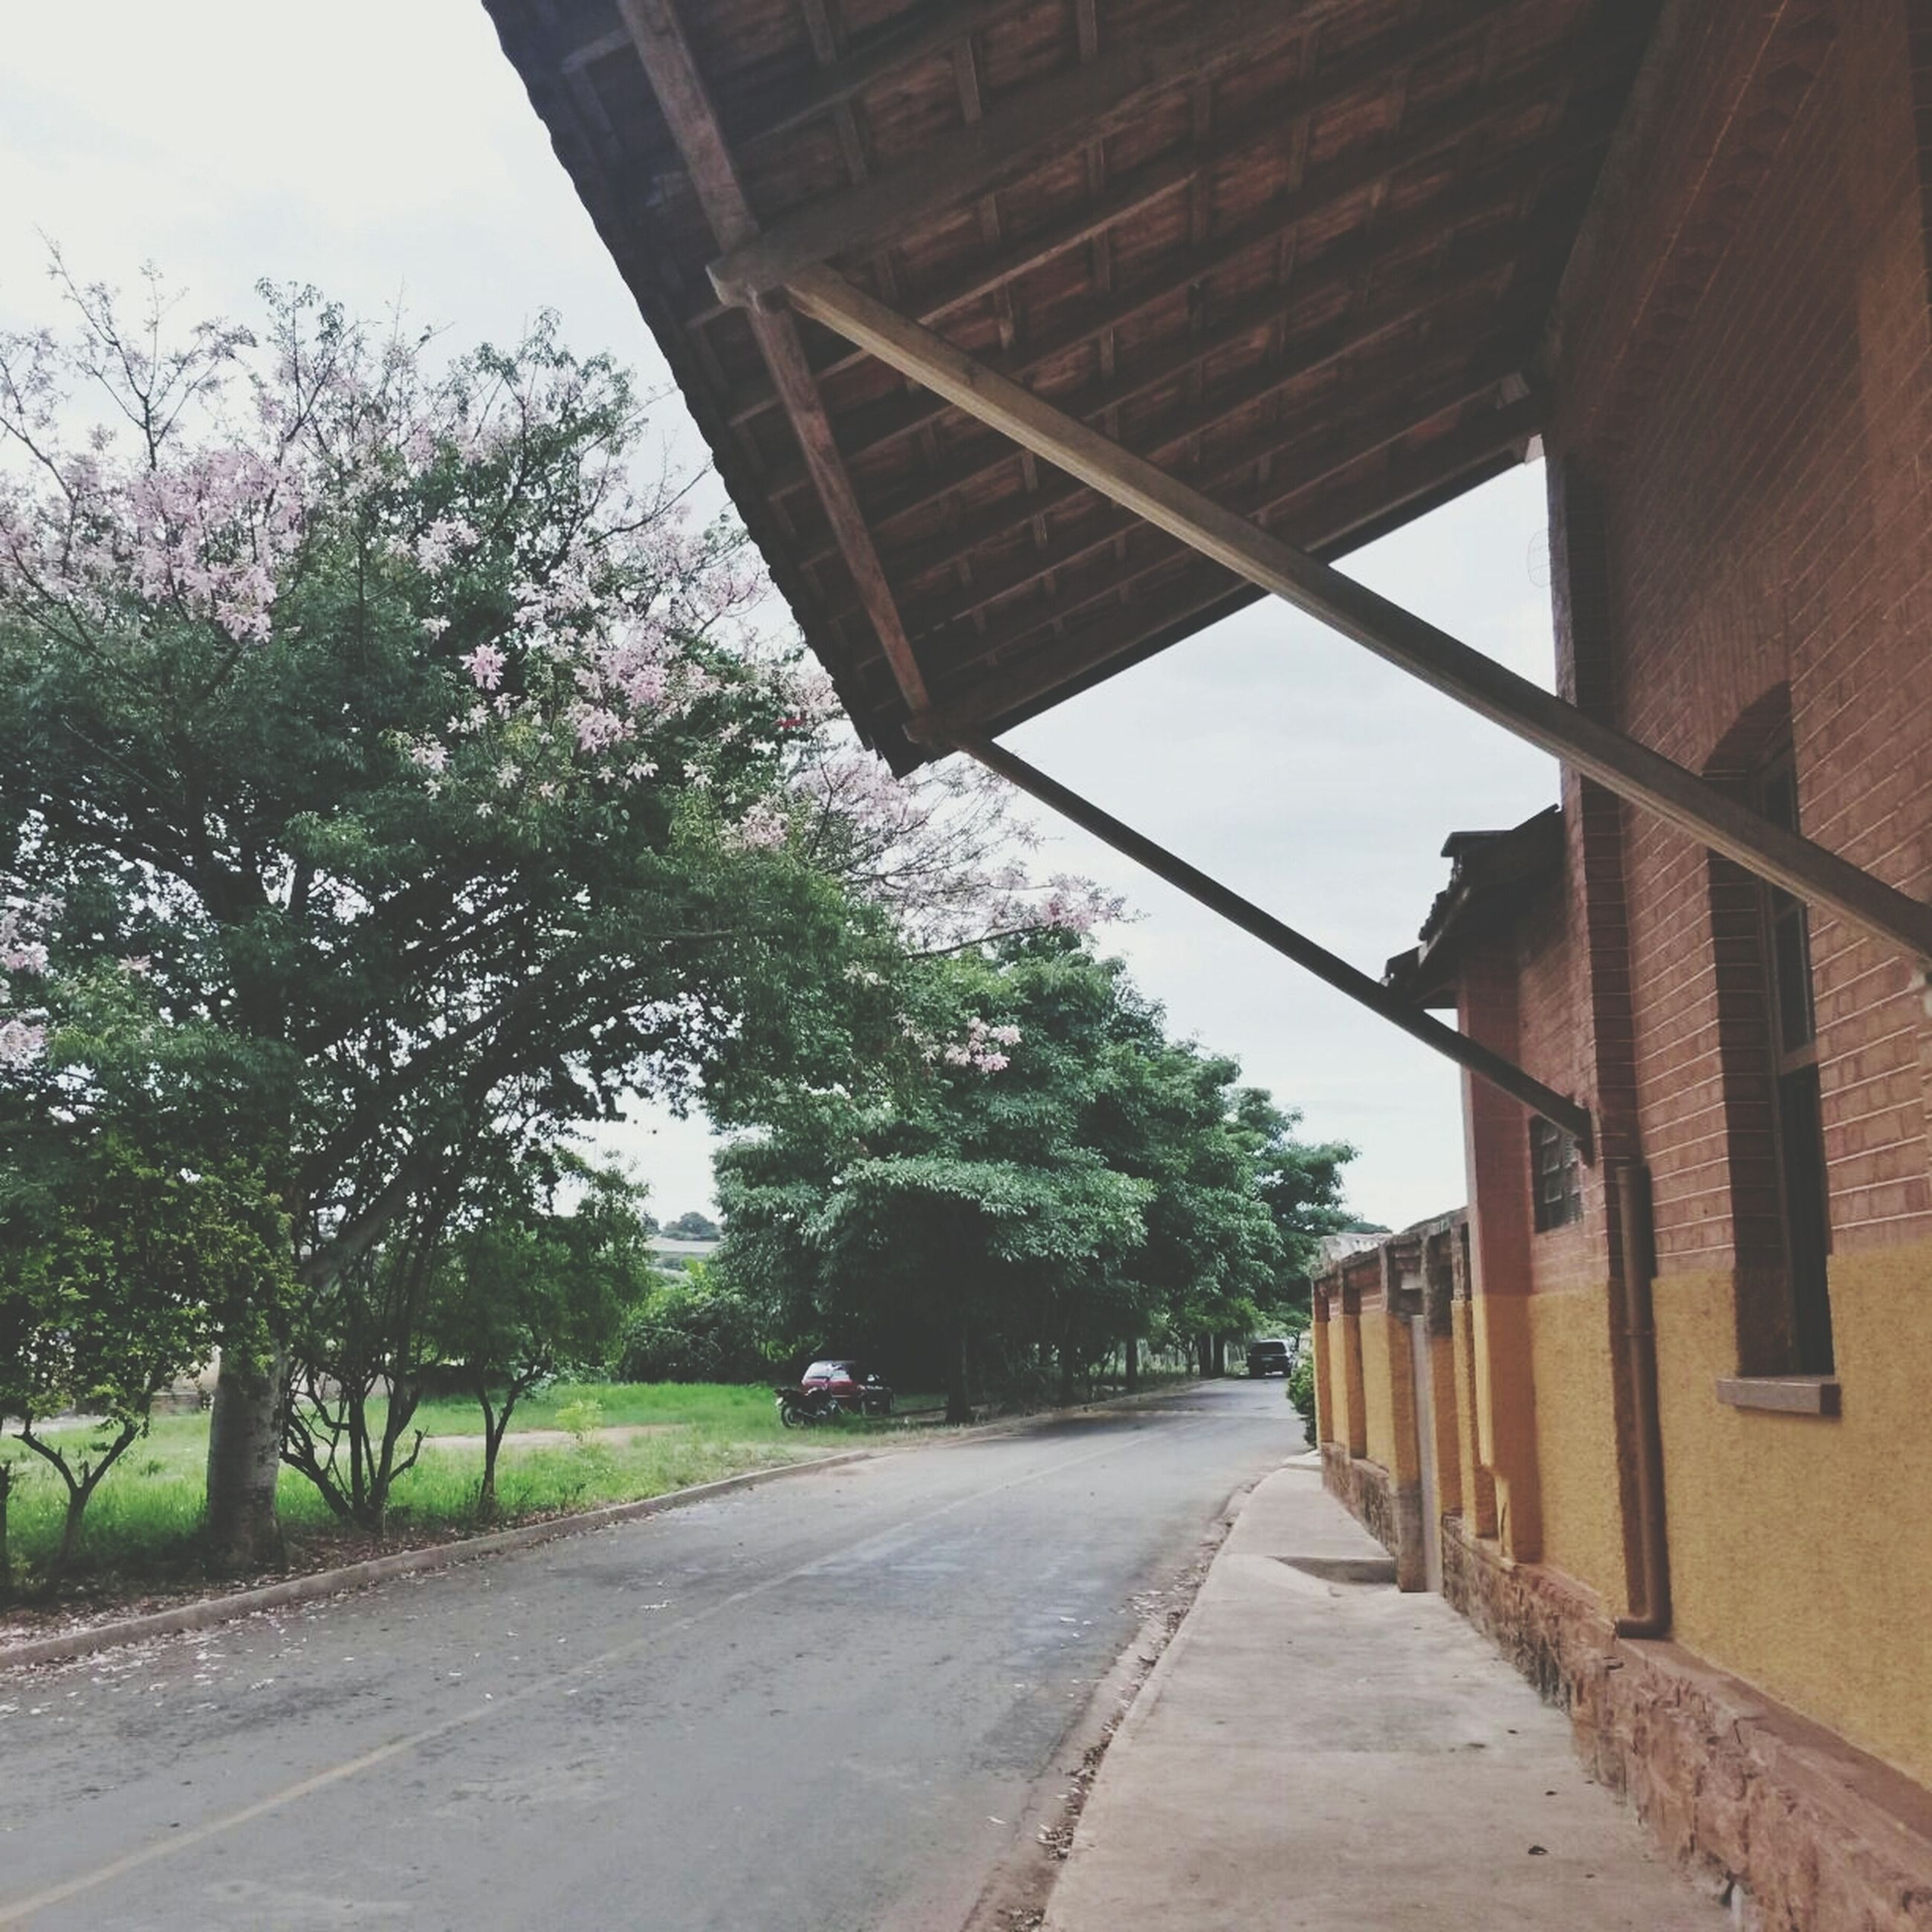 architecture, built structure, building exterior, the way forward, road, tree, street, transportation, diminishing perspective, sky, house, vanishing point, building, day, empty road, empty, outdoors, no people, wall - building feature, residential structure